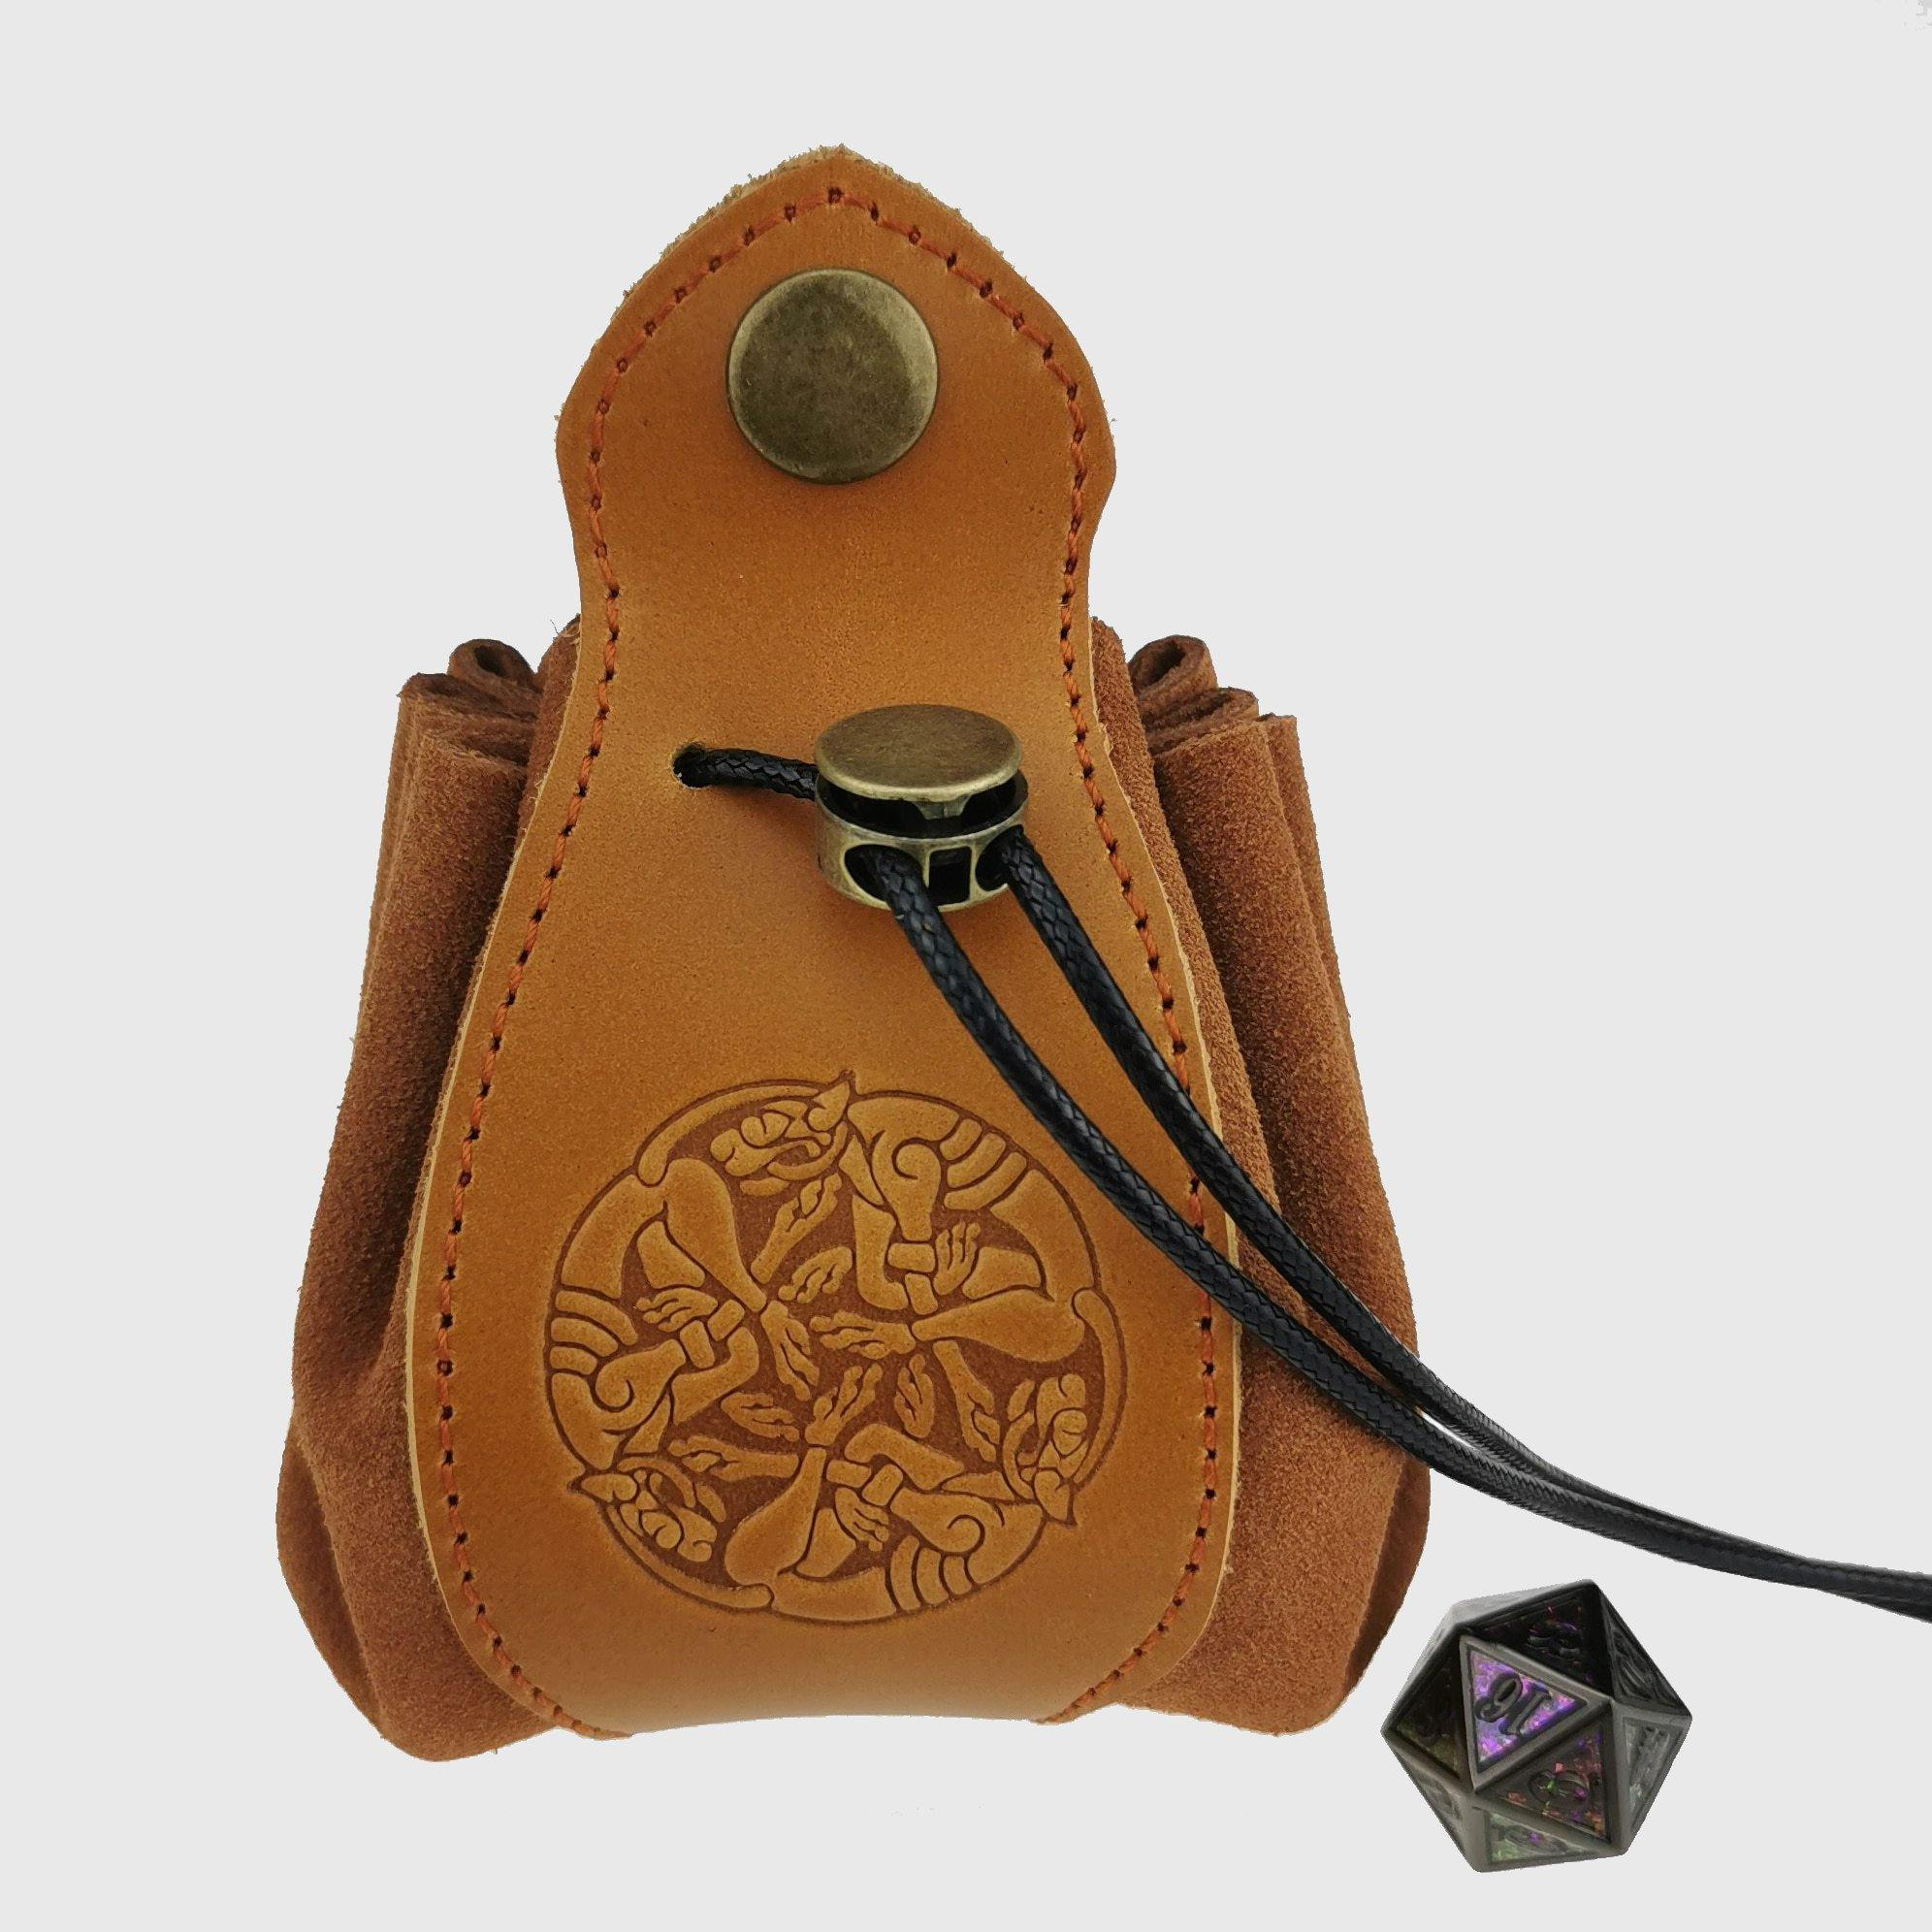 Handmade Leather Celtic Dice Bag & Tray - Wyvern's Hoard